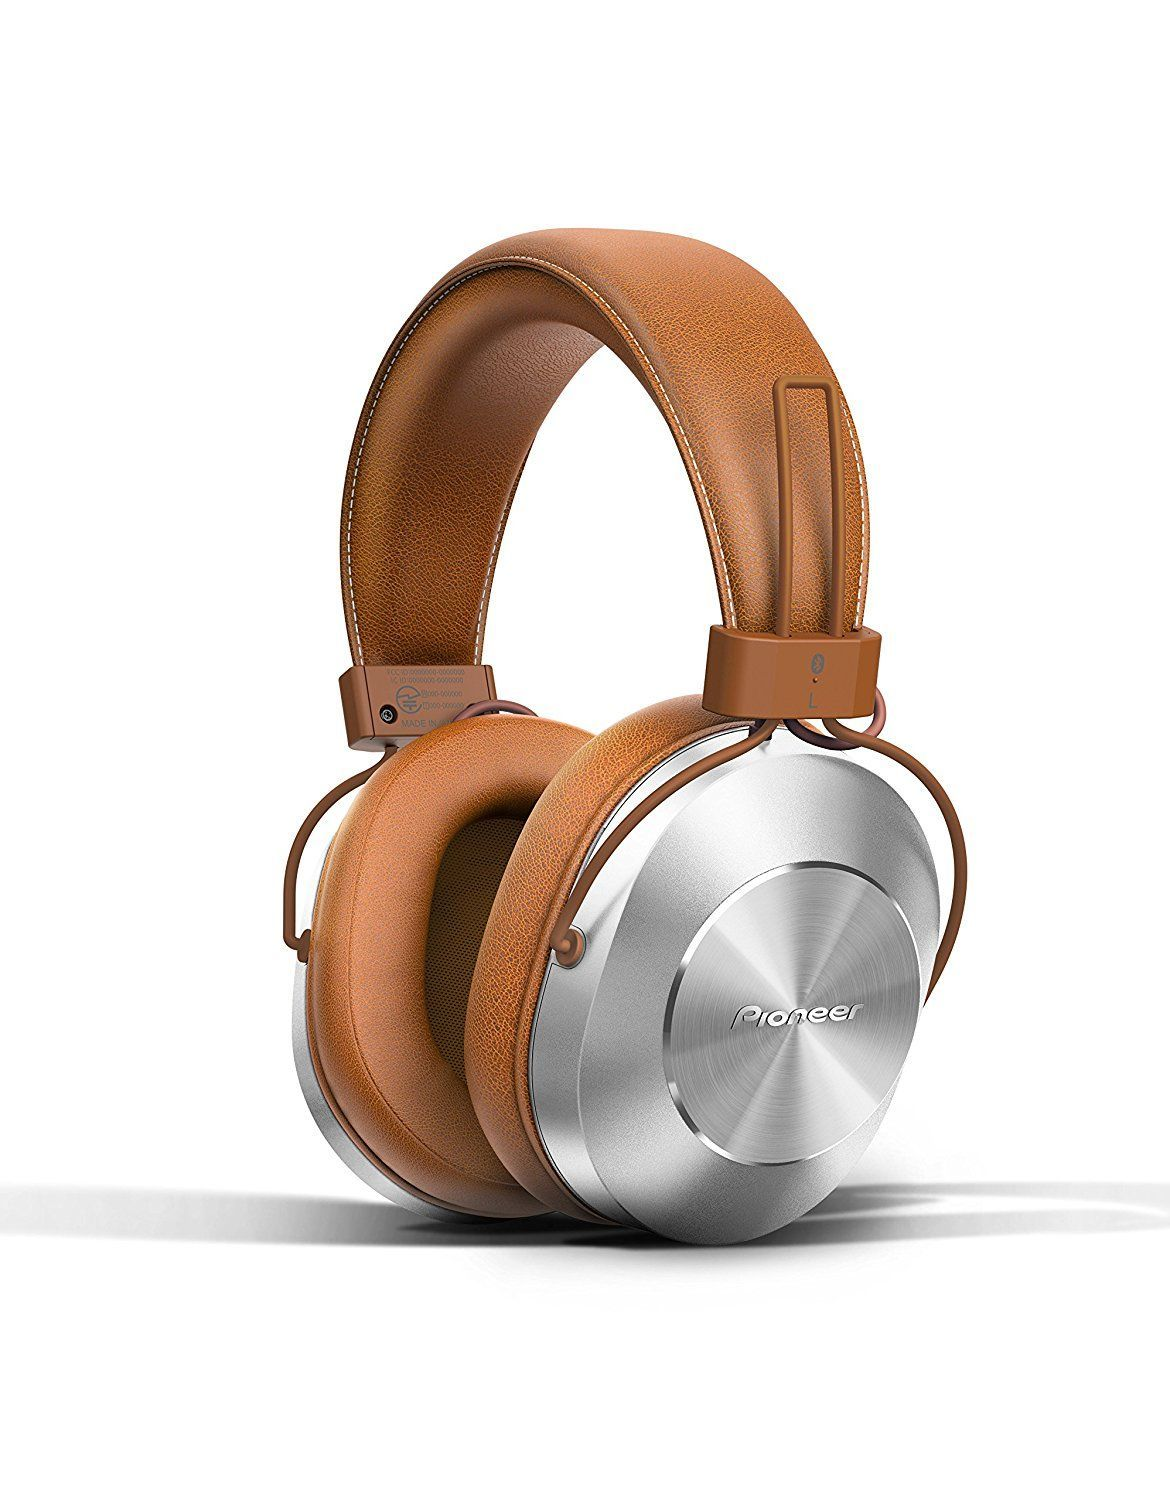 d57a6e9599d Pioneer Bluetooth and High-Resolution Over Ear Wireless Headphone ...